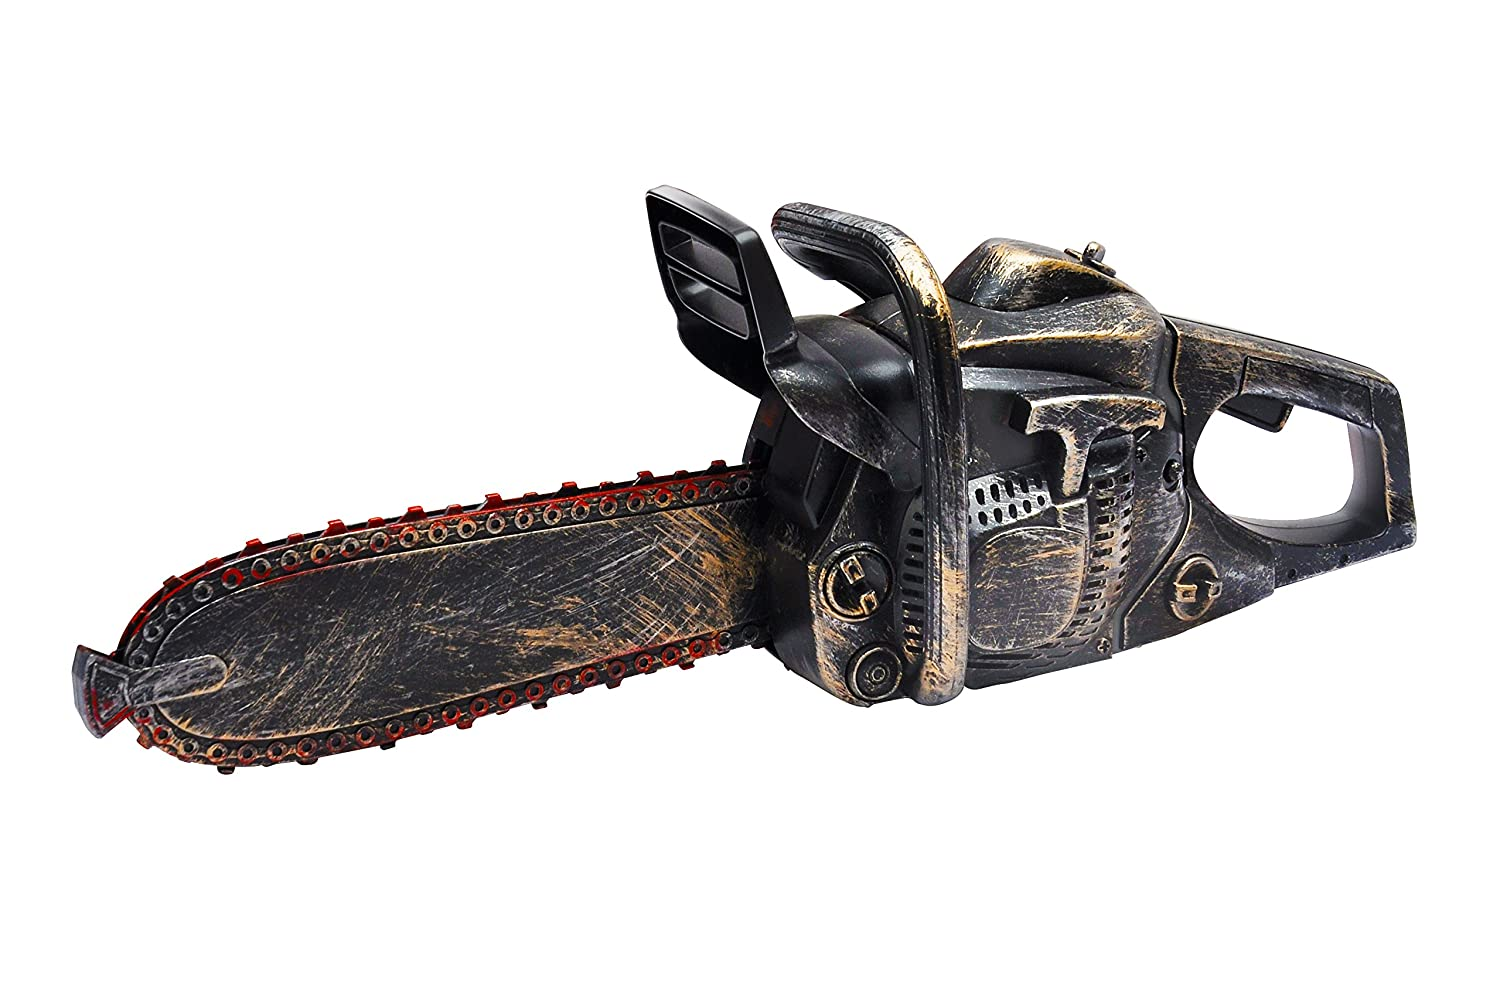 Liberty Imports Bloody Rusty Chainsaw Motion Sound Battery Operated Halloween Massacre Role Play Prop Accessory (16 Inches)